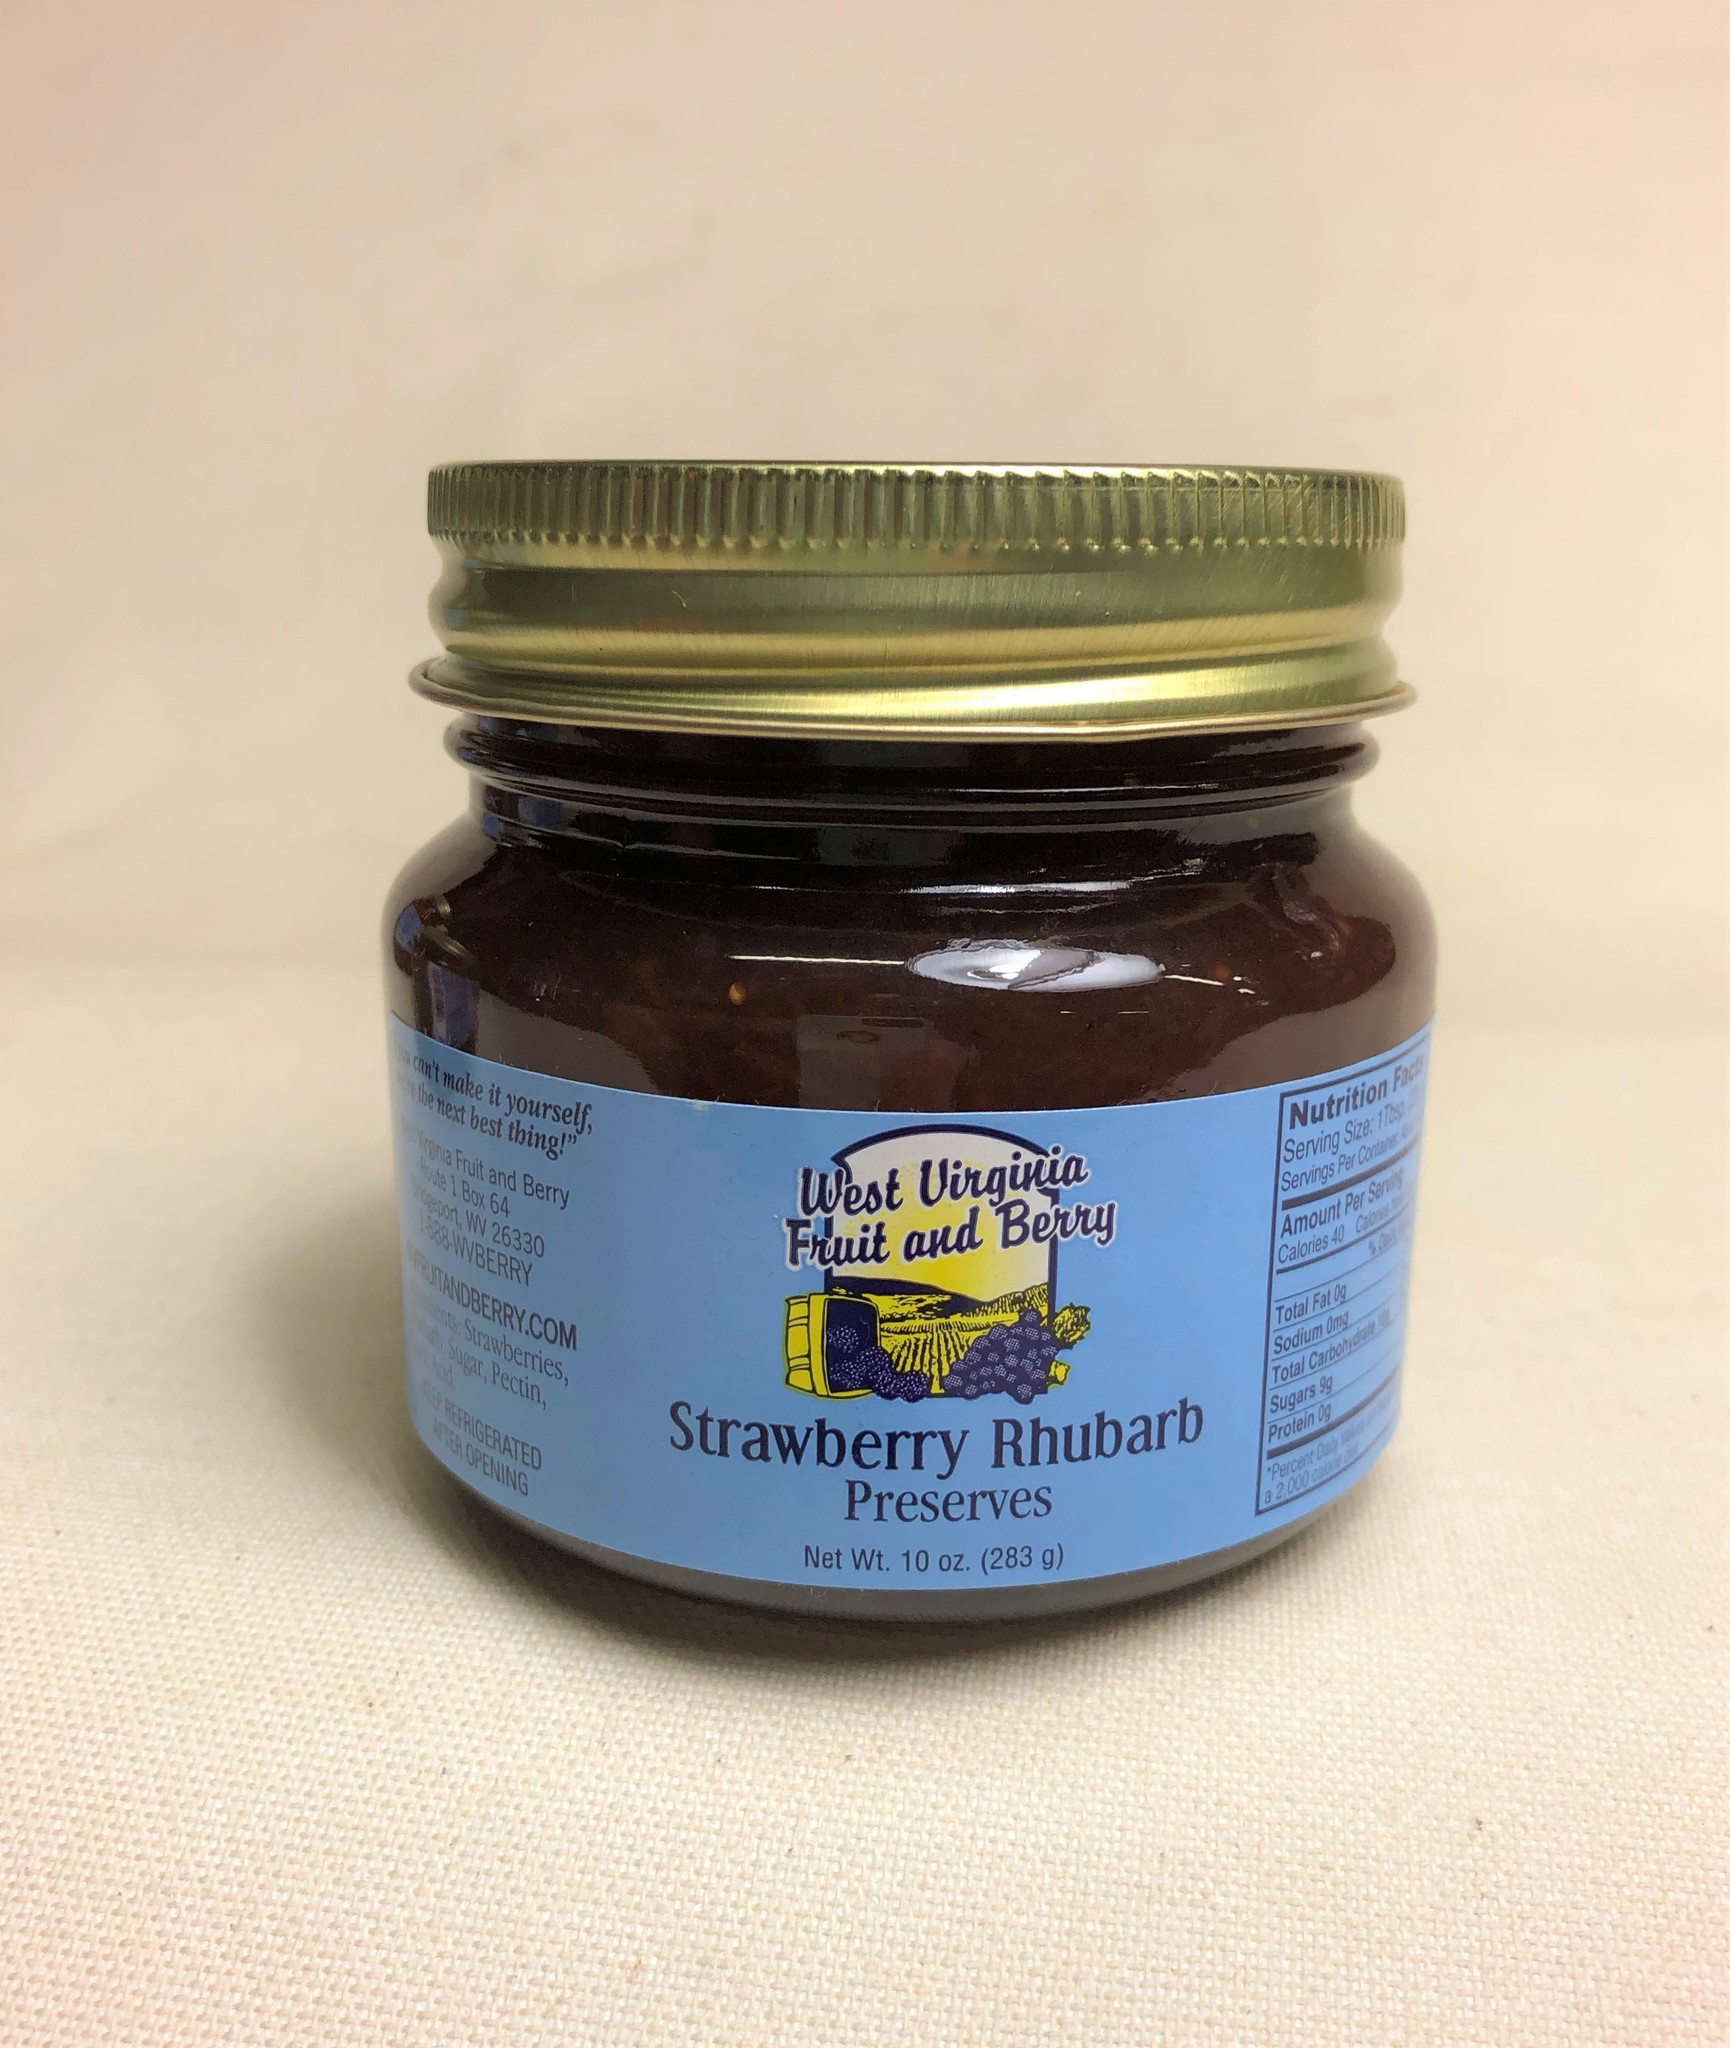 West Virginia Fruit and Berry WVF&B 10 oz. Strawberry Rhubarb Preserves